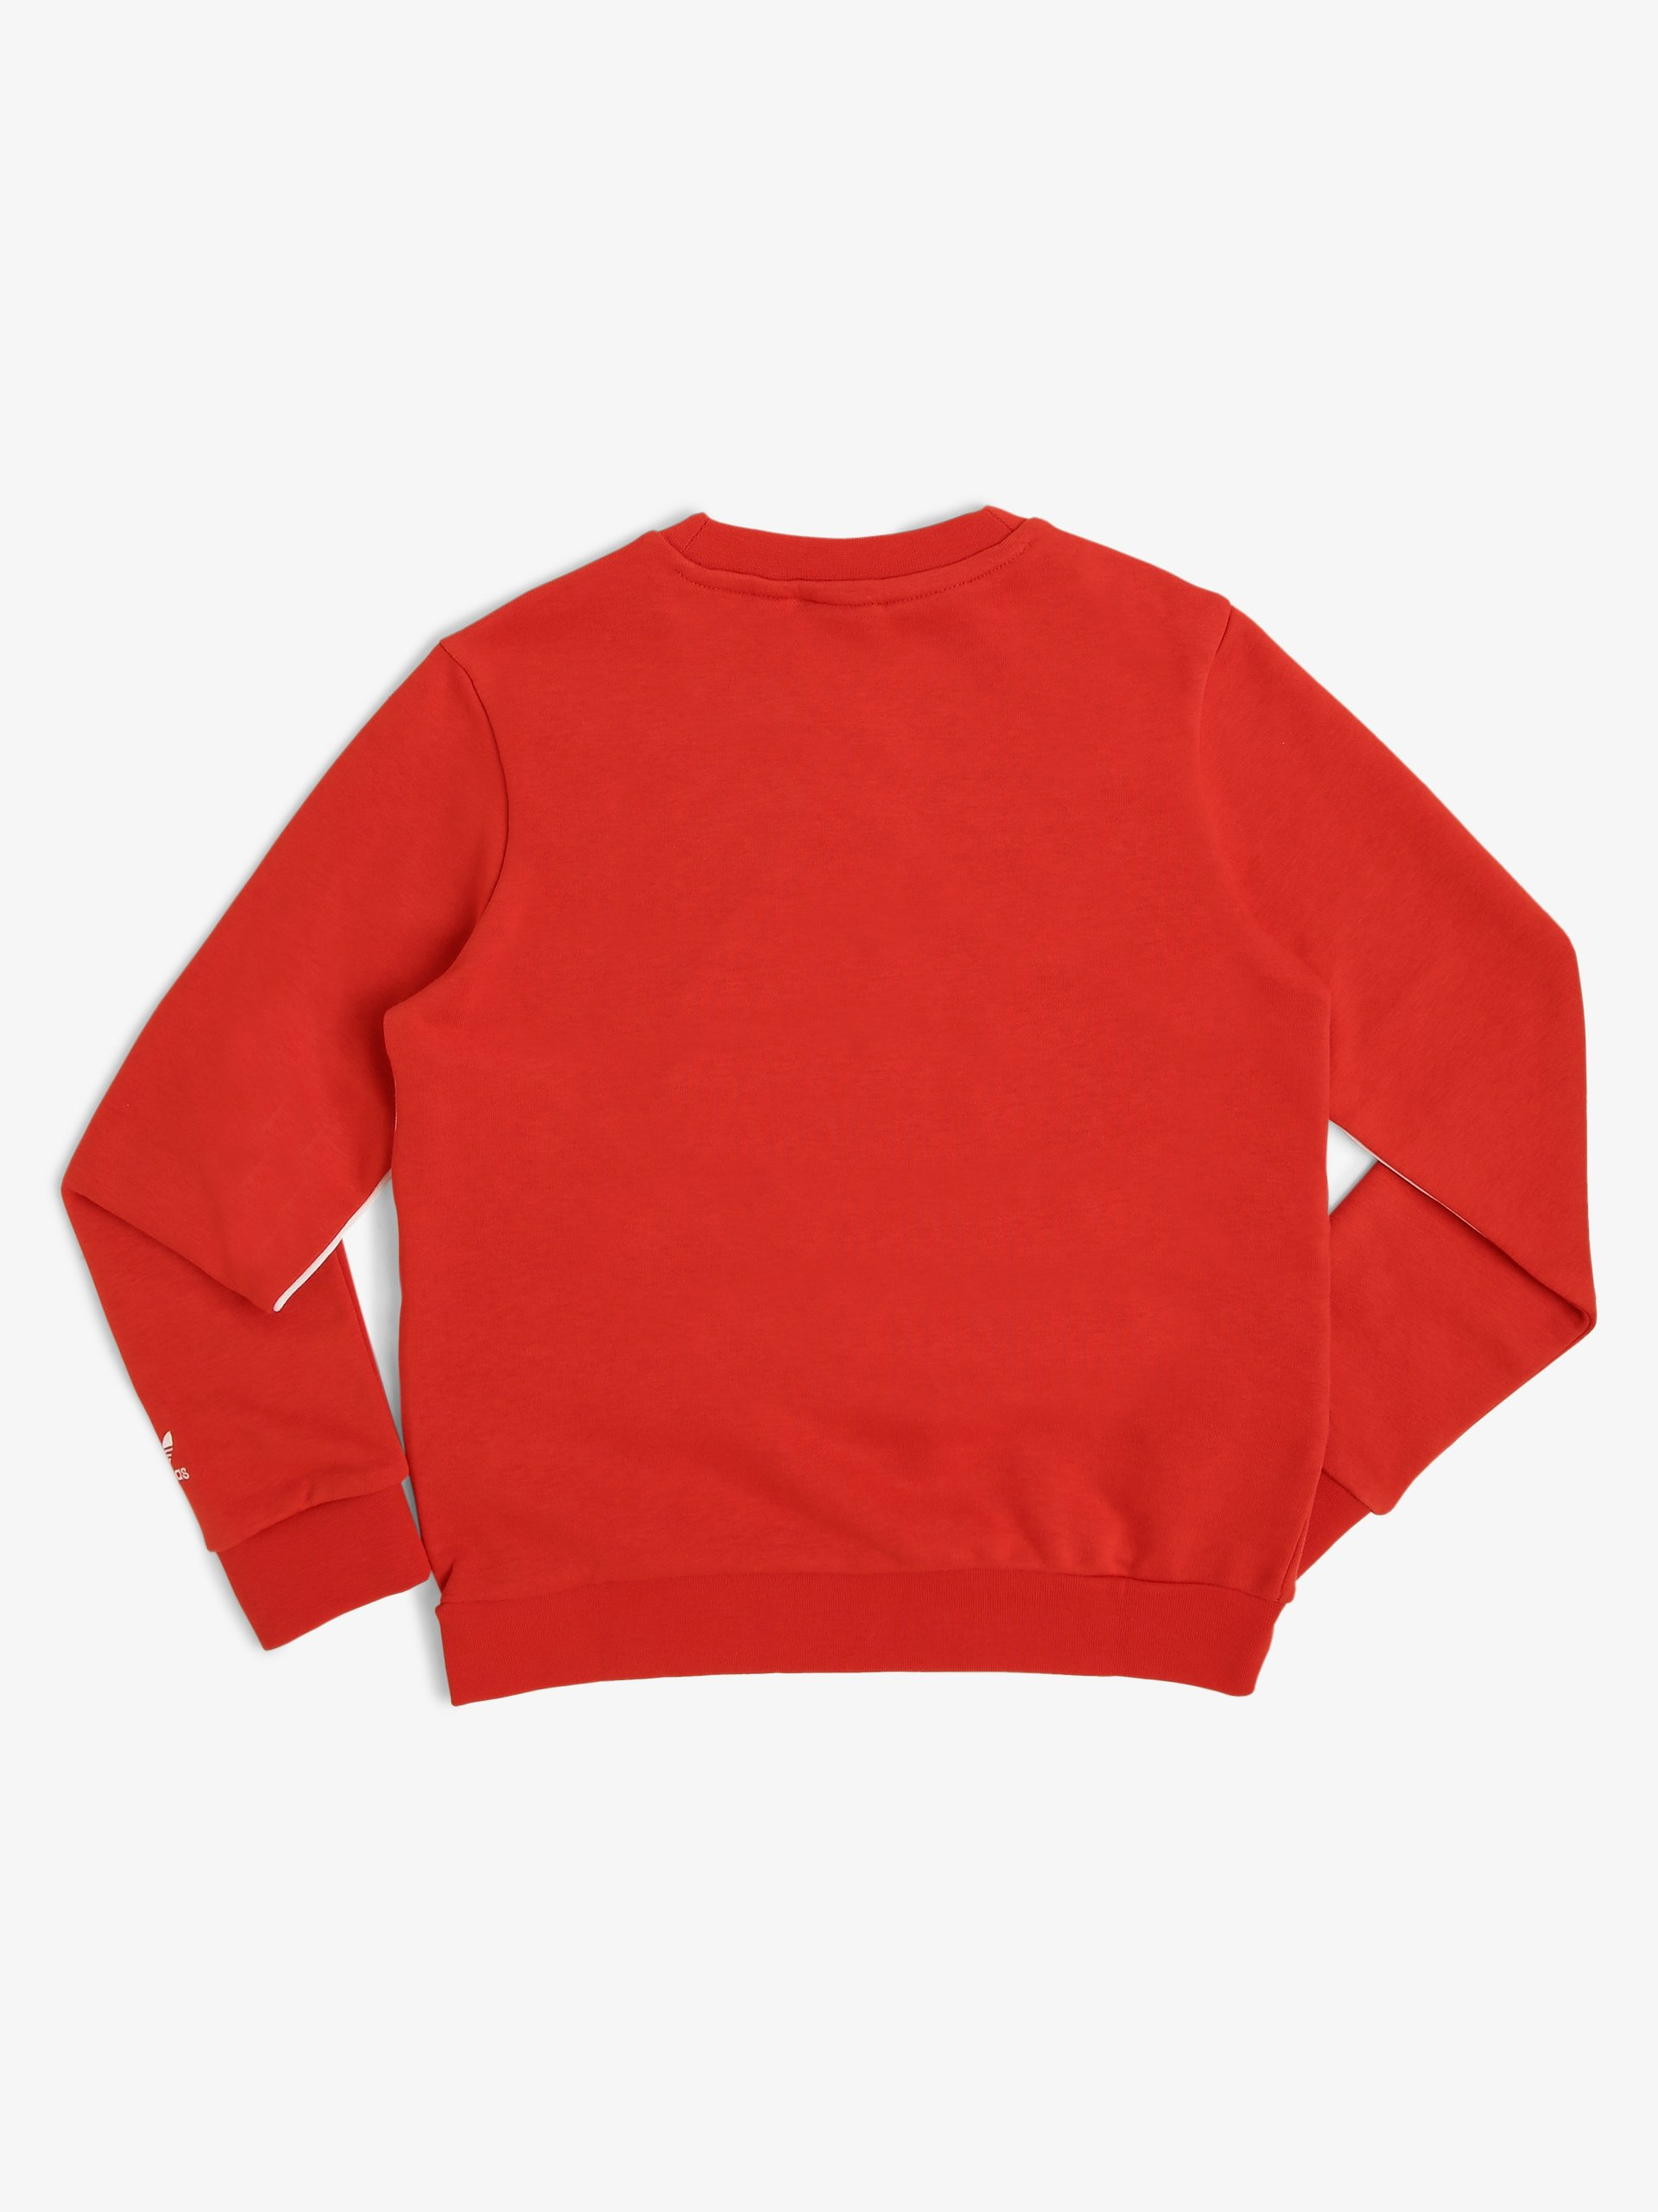 adidas Originals Jungen Sweatshirt